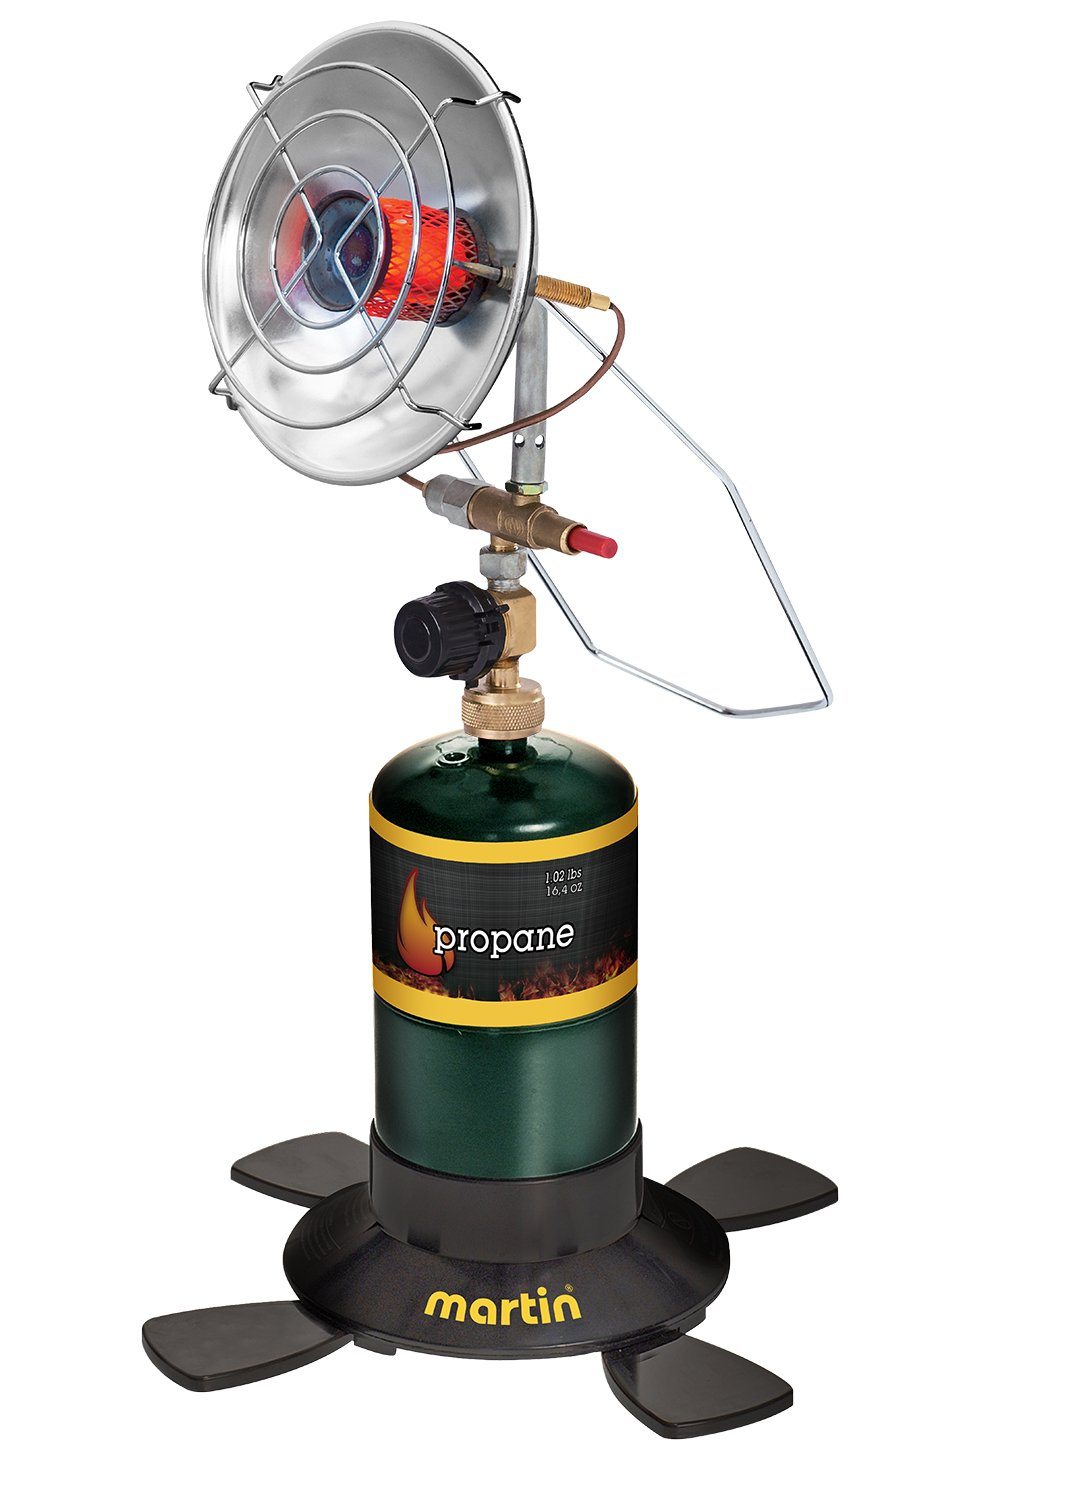 MARTIN Portable Outdoor Camping Infrared Propane Heater Bismar